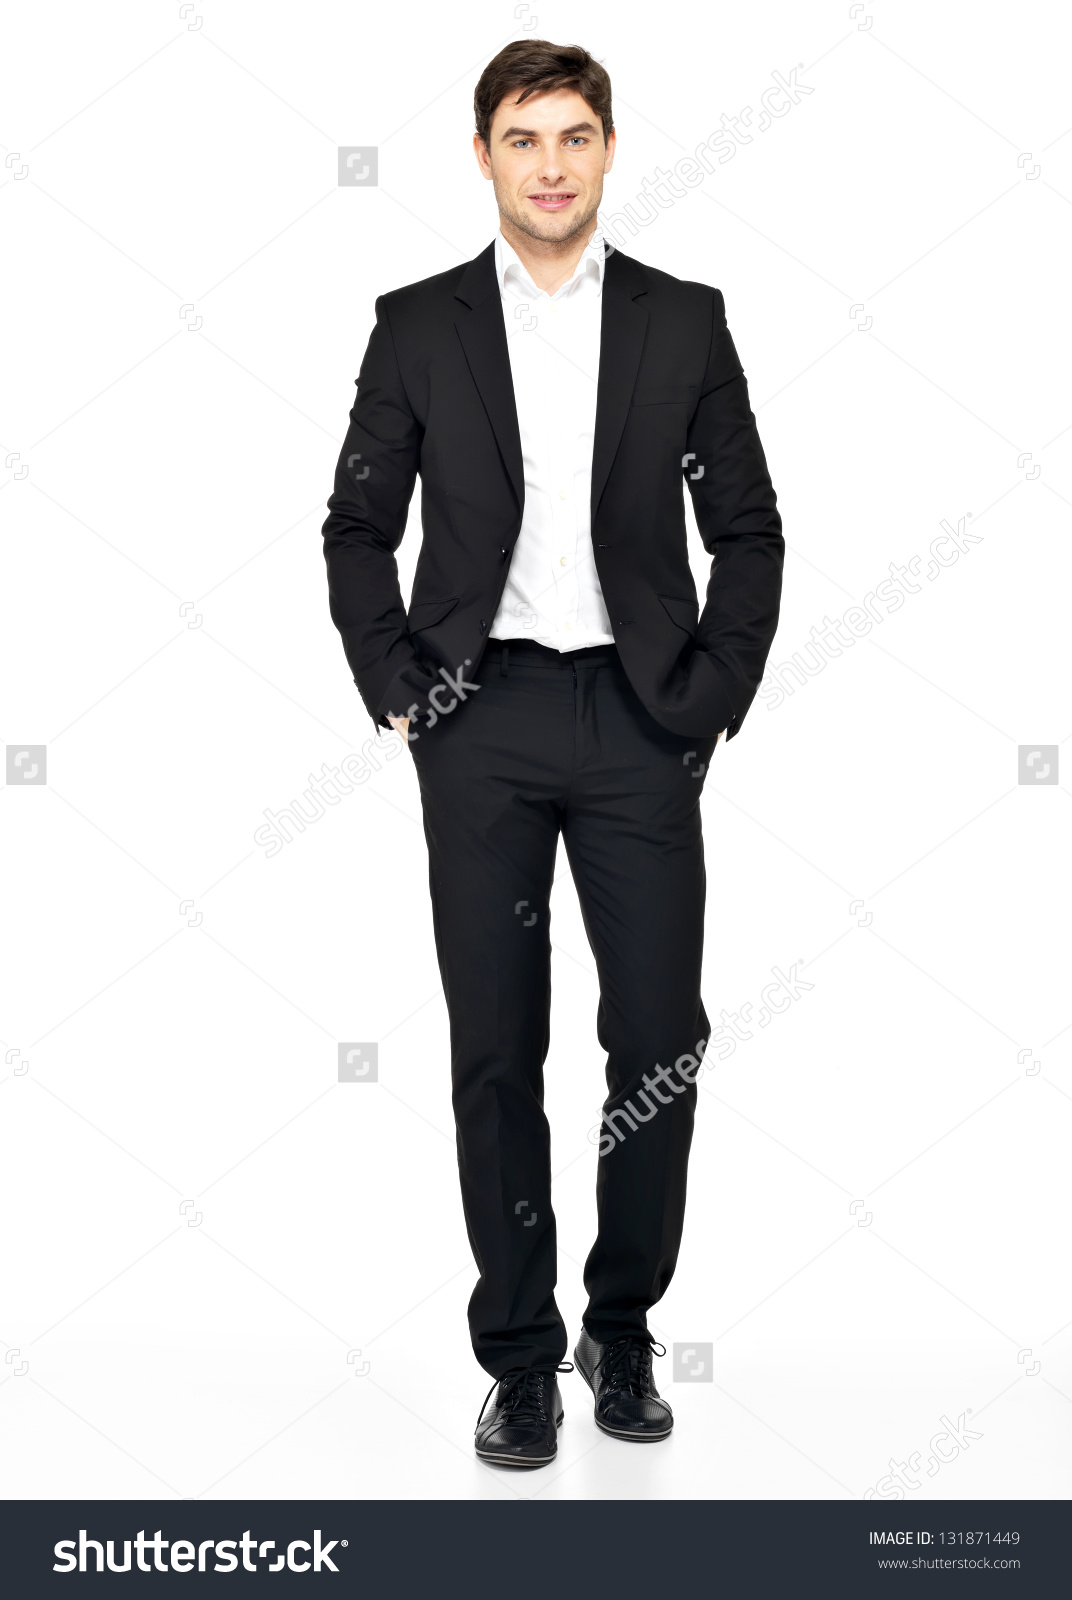 casual man black suit and hat clipart